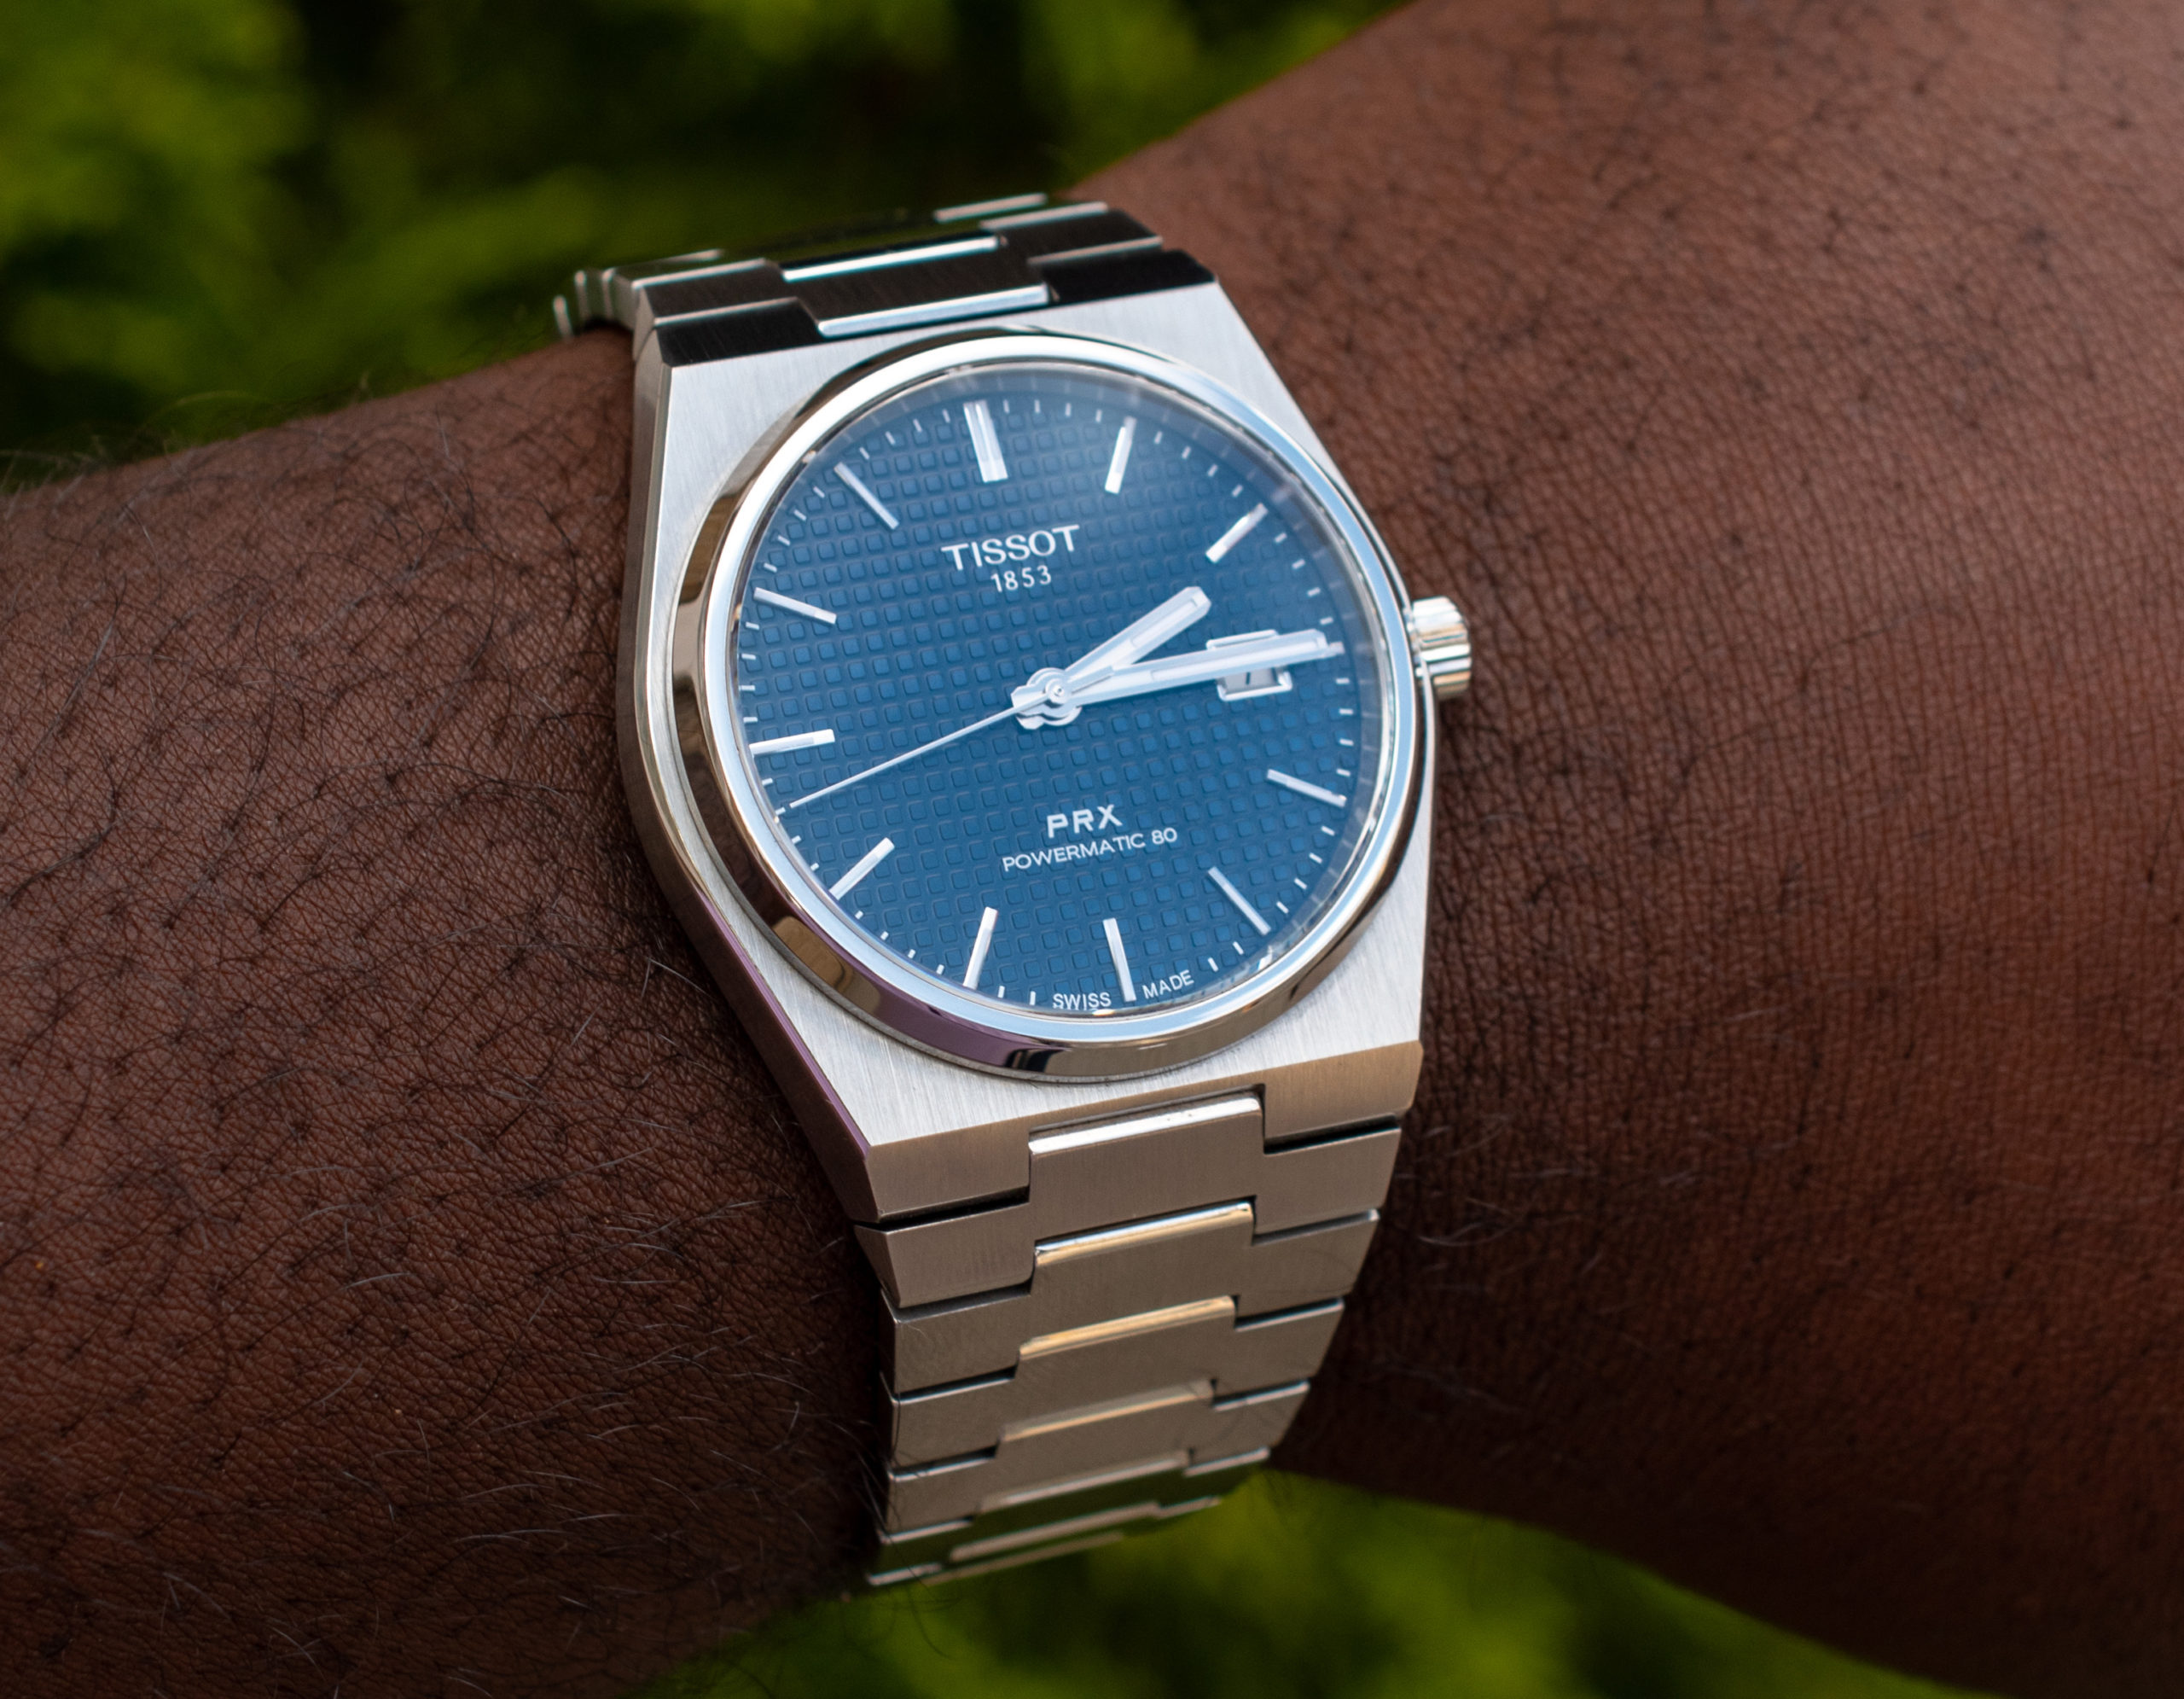 Don't Miss This: Our team debates the best watches under $1,000 USD